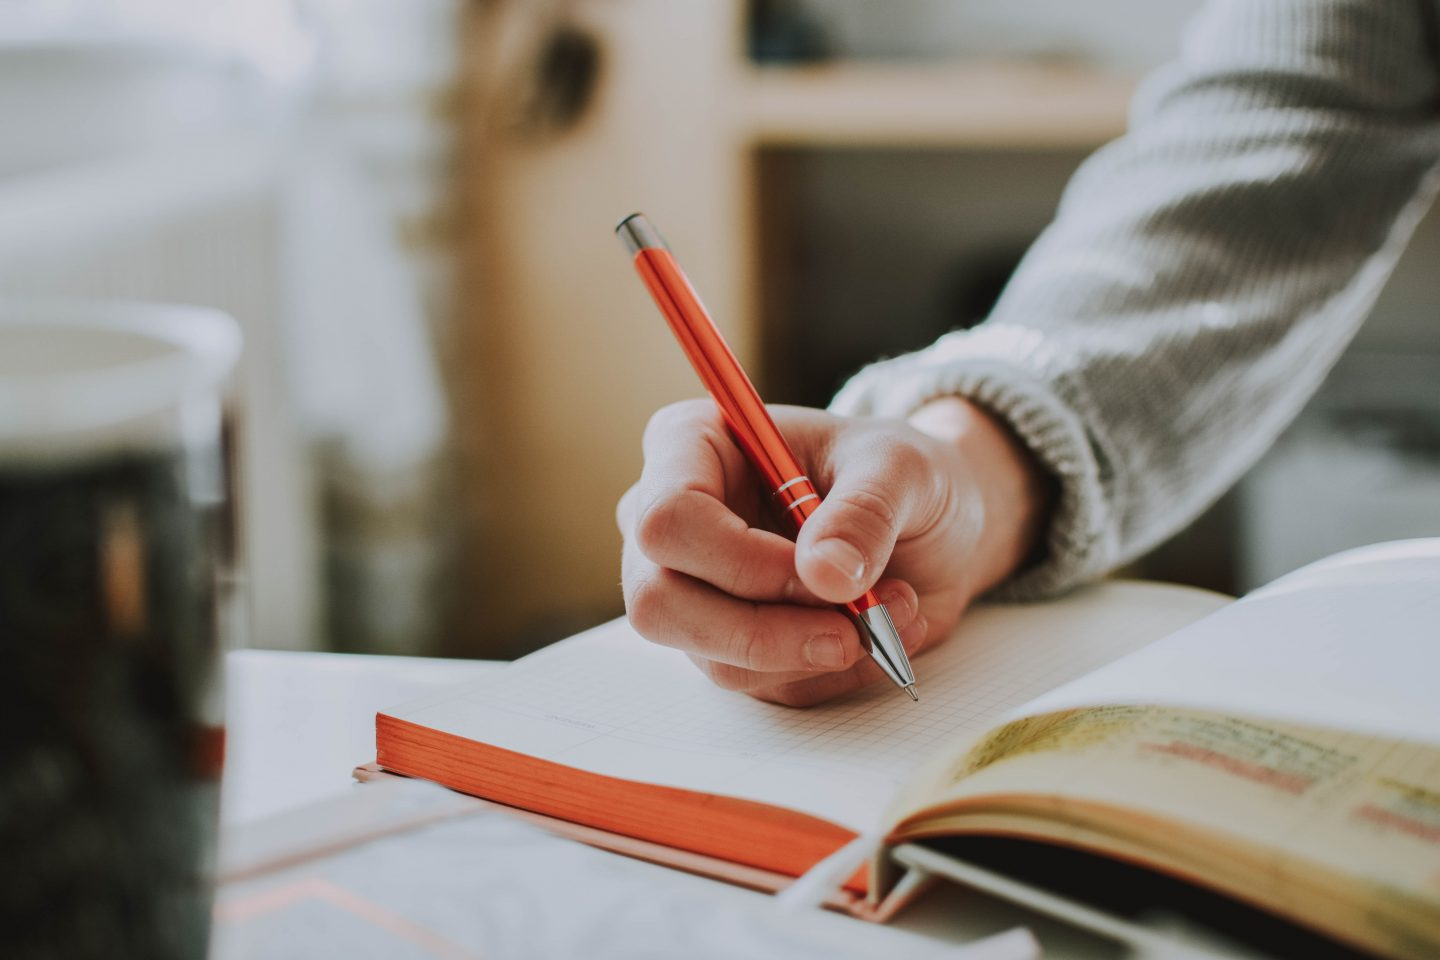 21 Productivity Hacks & Tips to Crush your to-do List